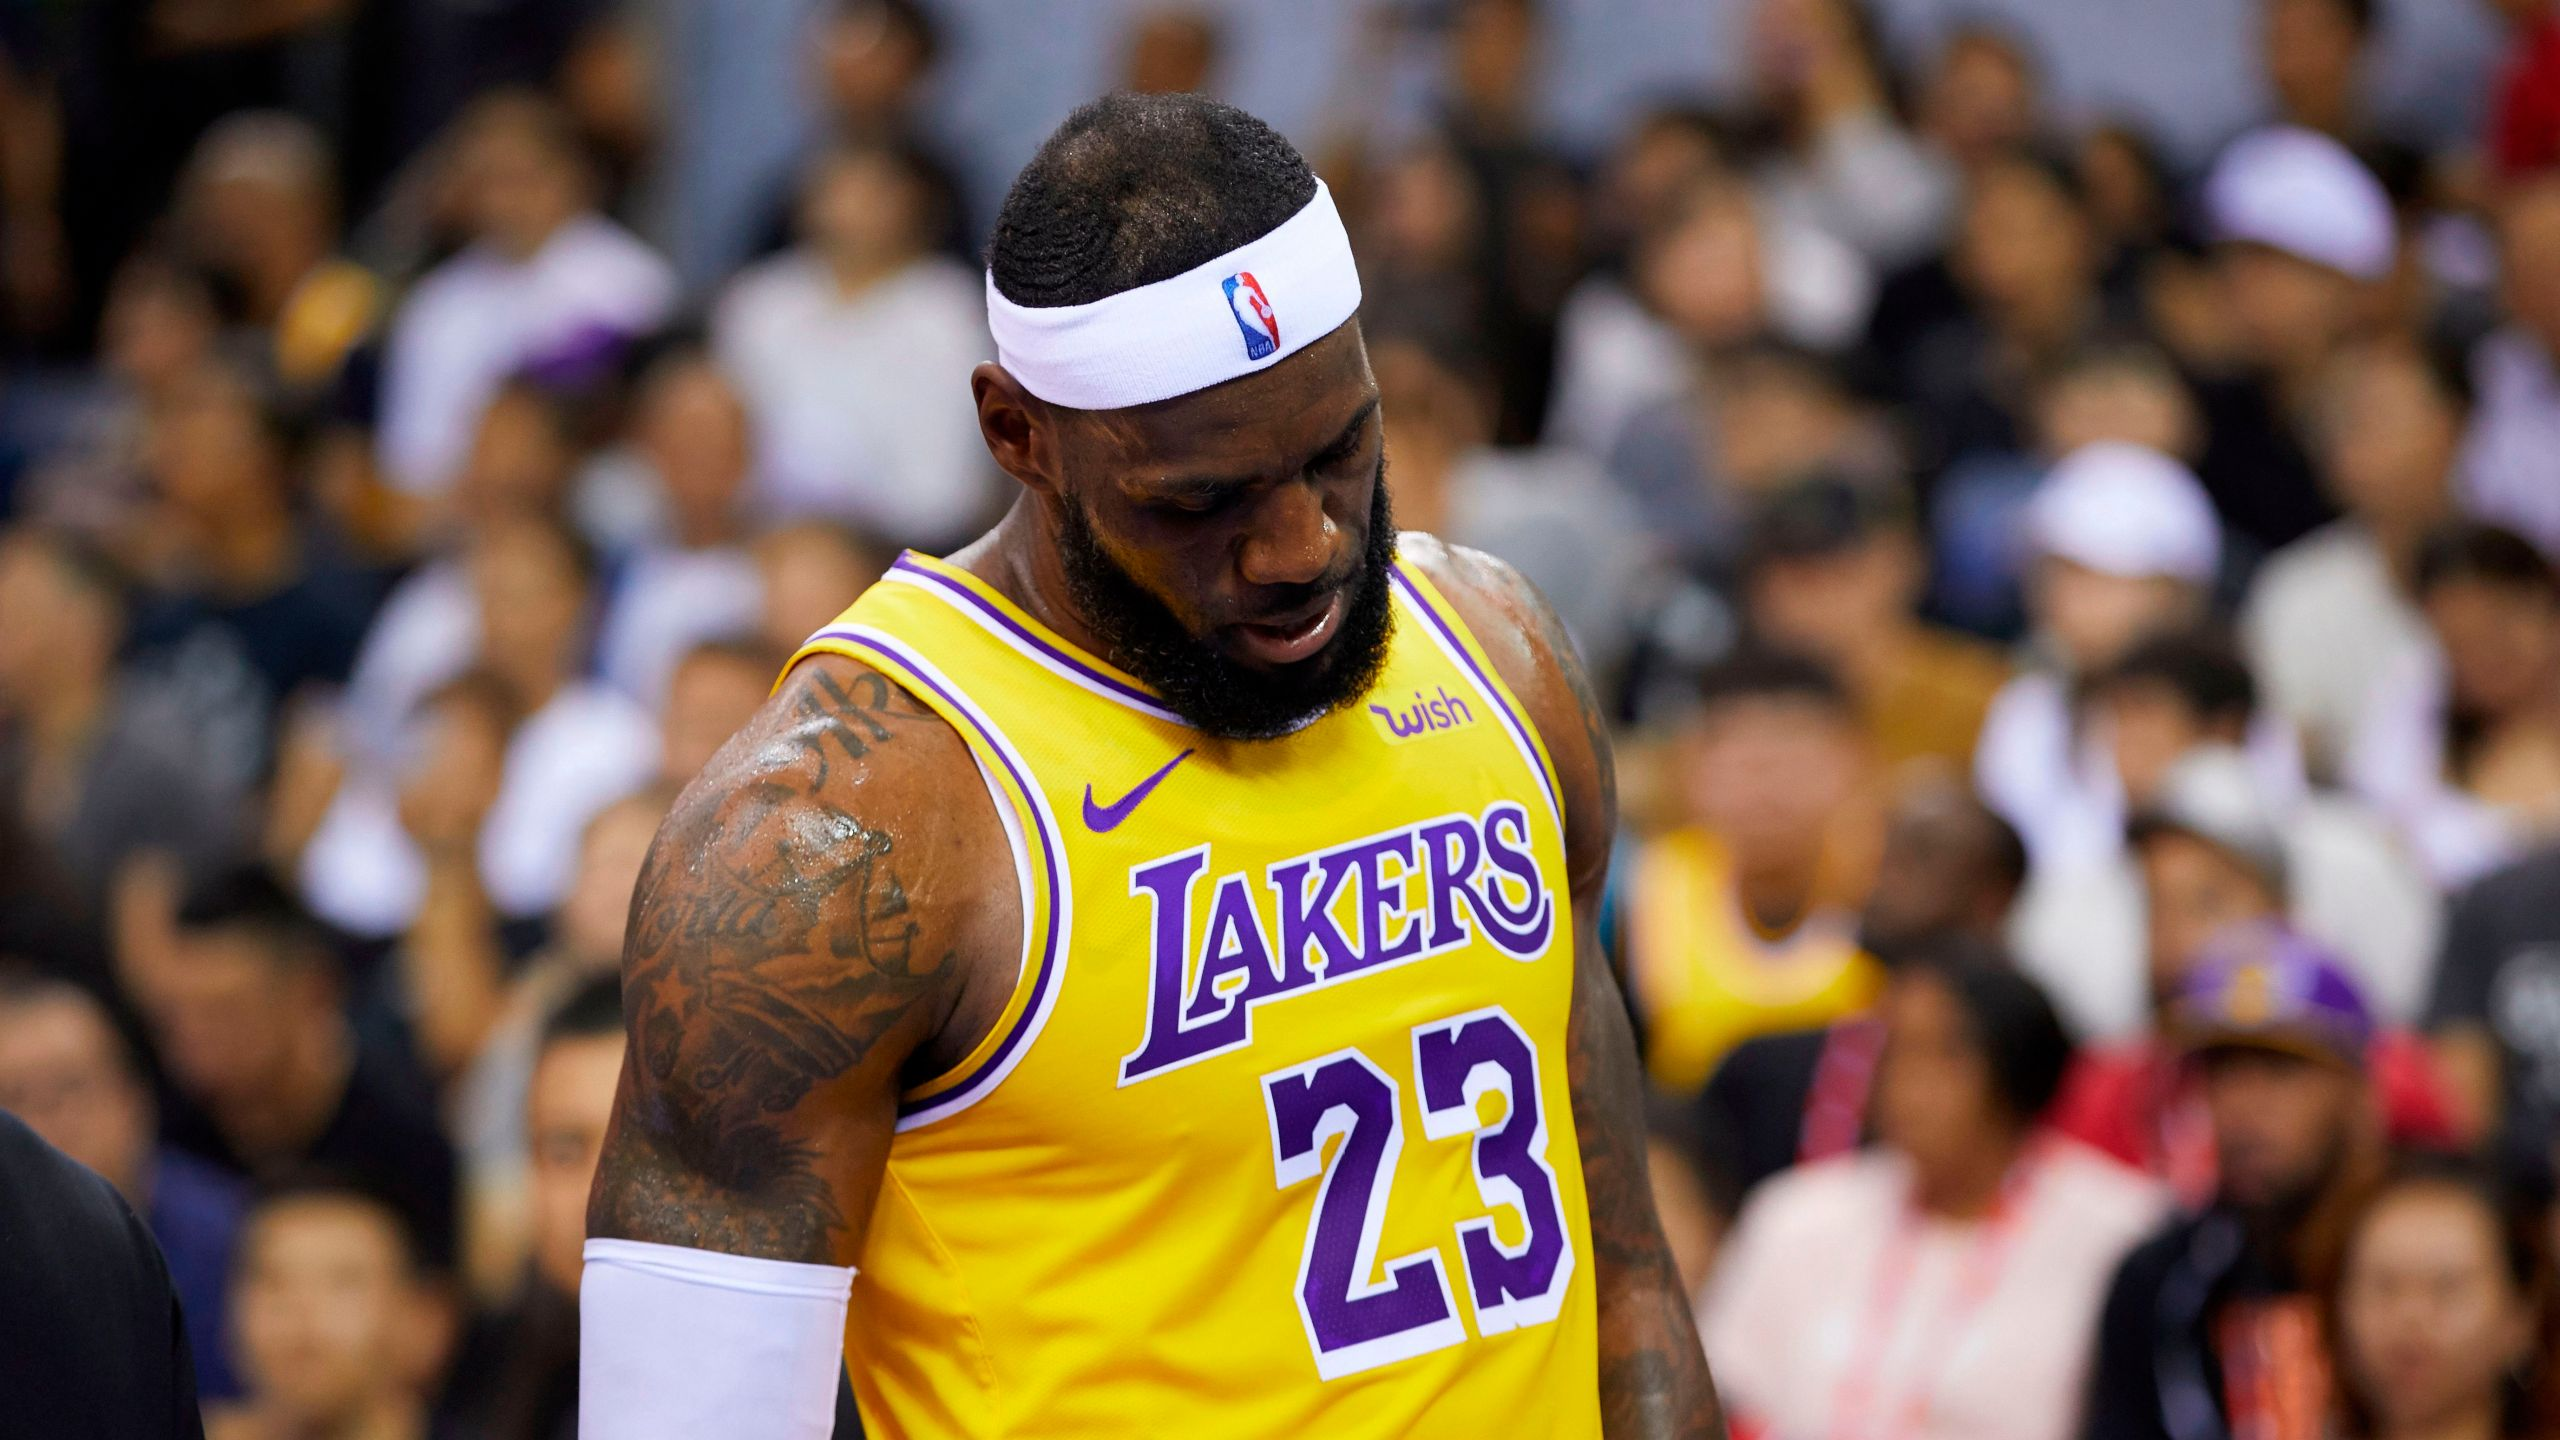 Lakers star LeBron James reacts during the NBA pre-season game between Los Angeles and Brooklyn Nets in Shenzhen, in China's southern Guangdong province on October 12, 2019. (Credit: STR/AFP via Getty Images)